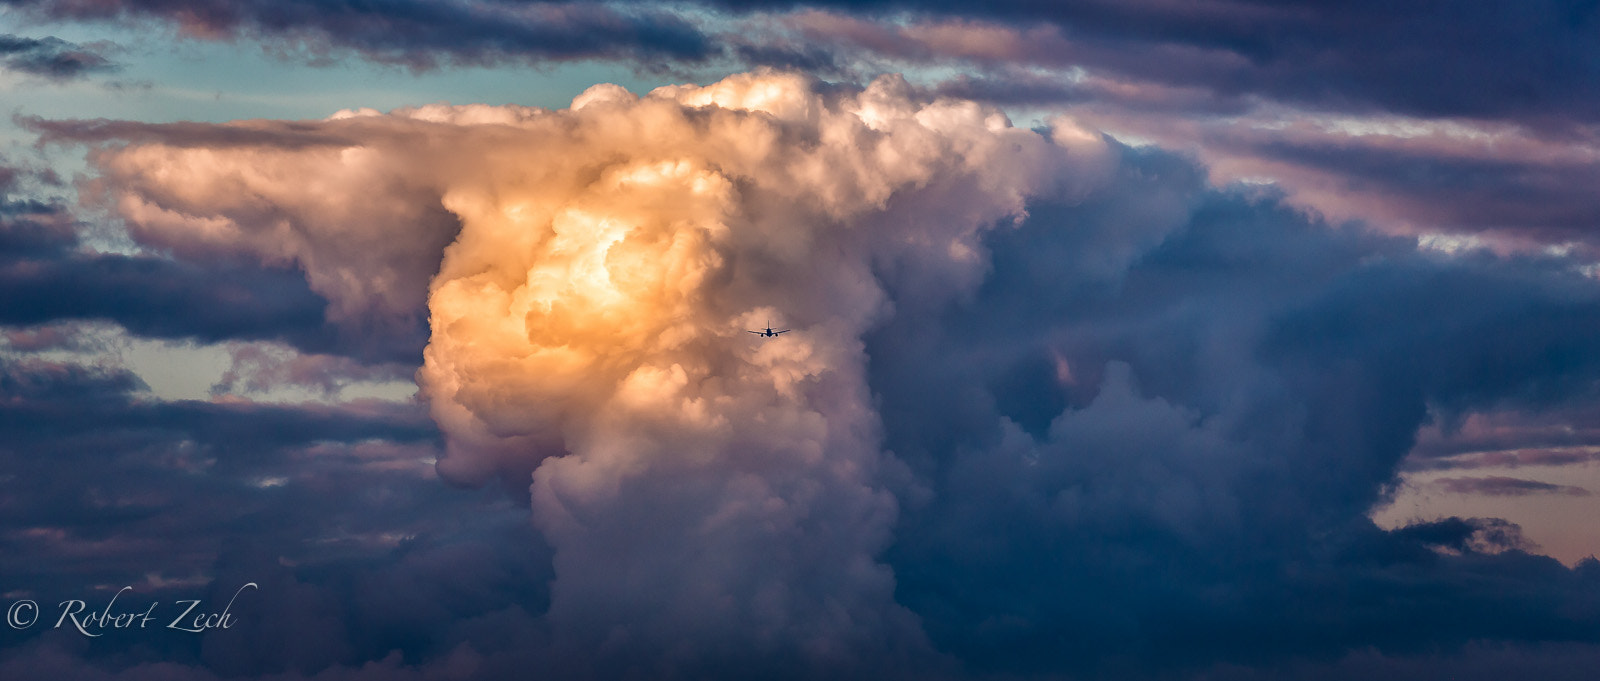 Photograph INTO THE CLOUDS by Robert Zech on 500px